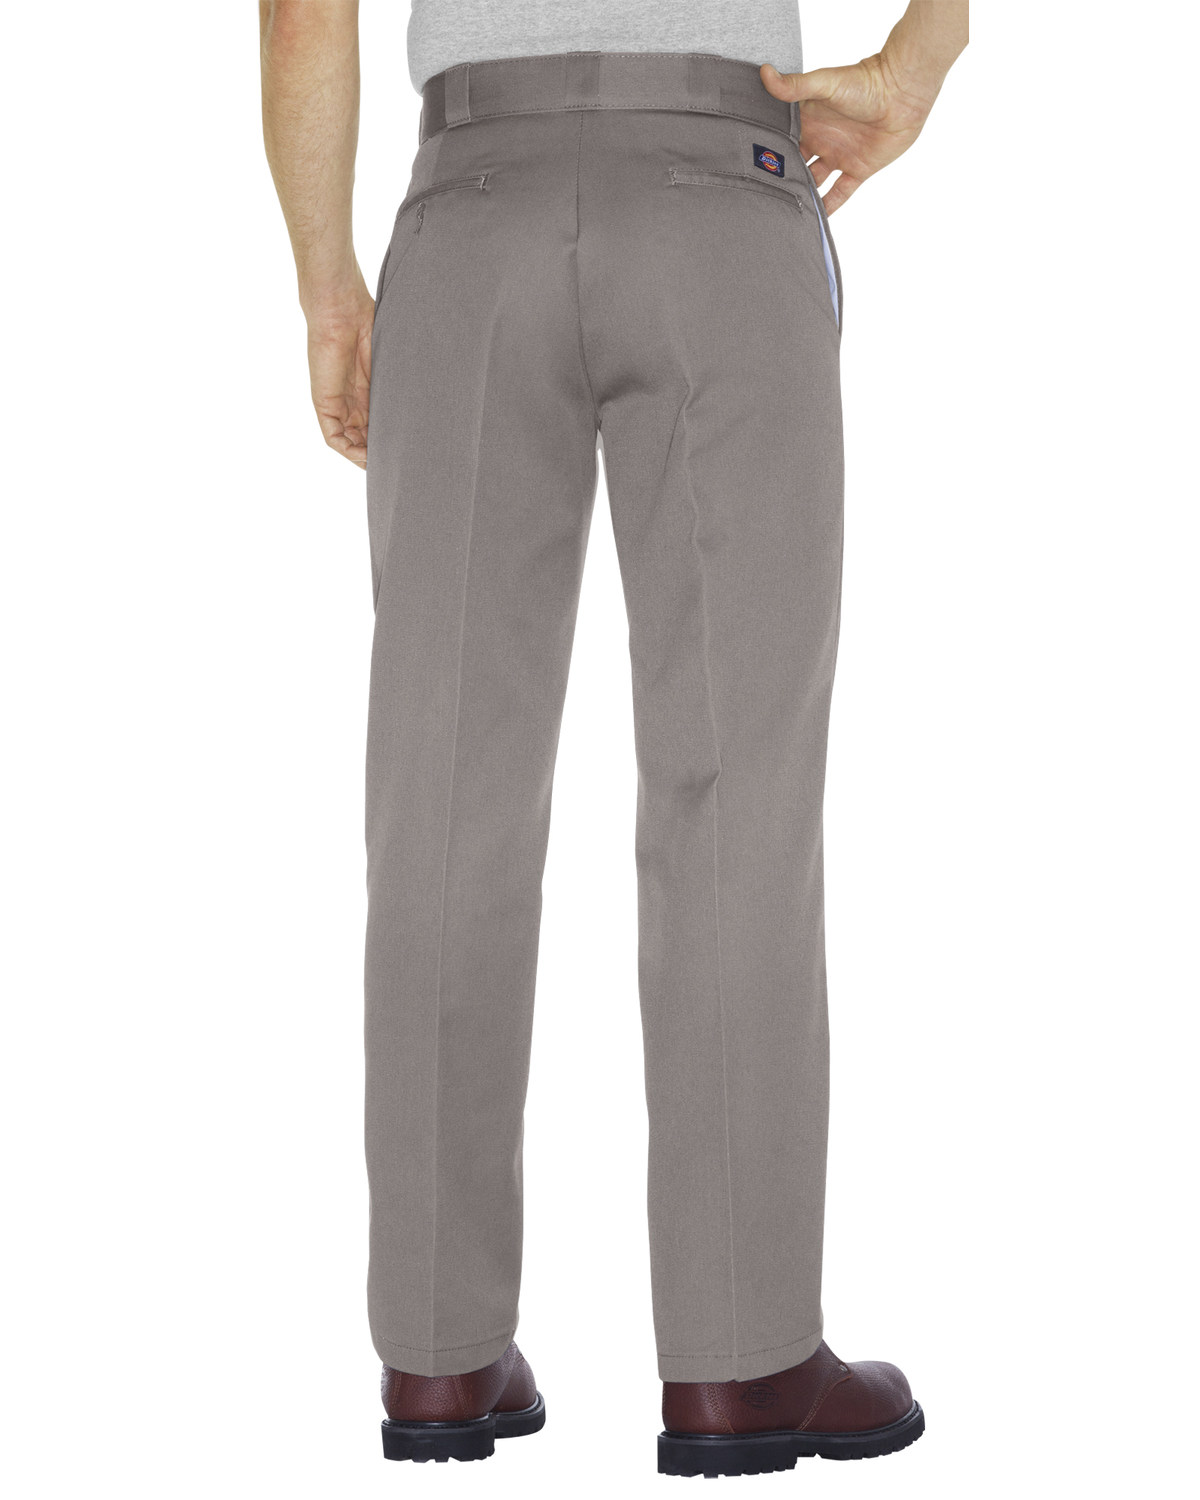 20d59eb148f Zoomed Image Dickies Men's Original 874® Silver Work Pants - Big & Tall,  Silver, ...